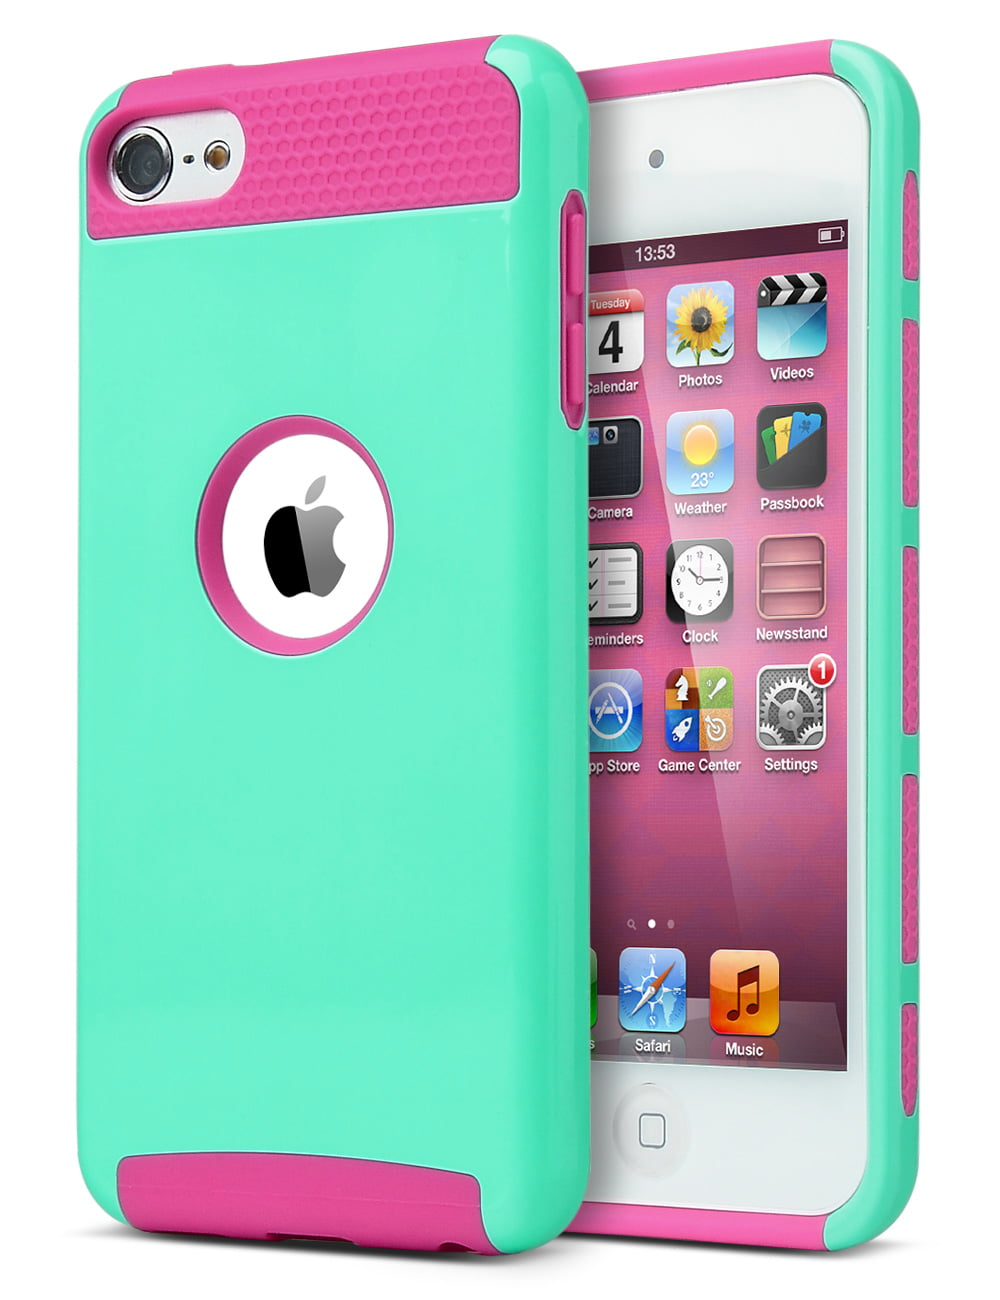 ULAK Slim Fit Protective iPod Touch 5 6 Case Dual Layer Hybrid Shockproof Cover For iPod Touch 5 5th Gen / 6 6th Gen